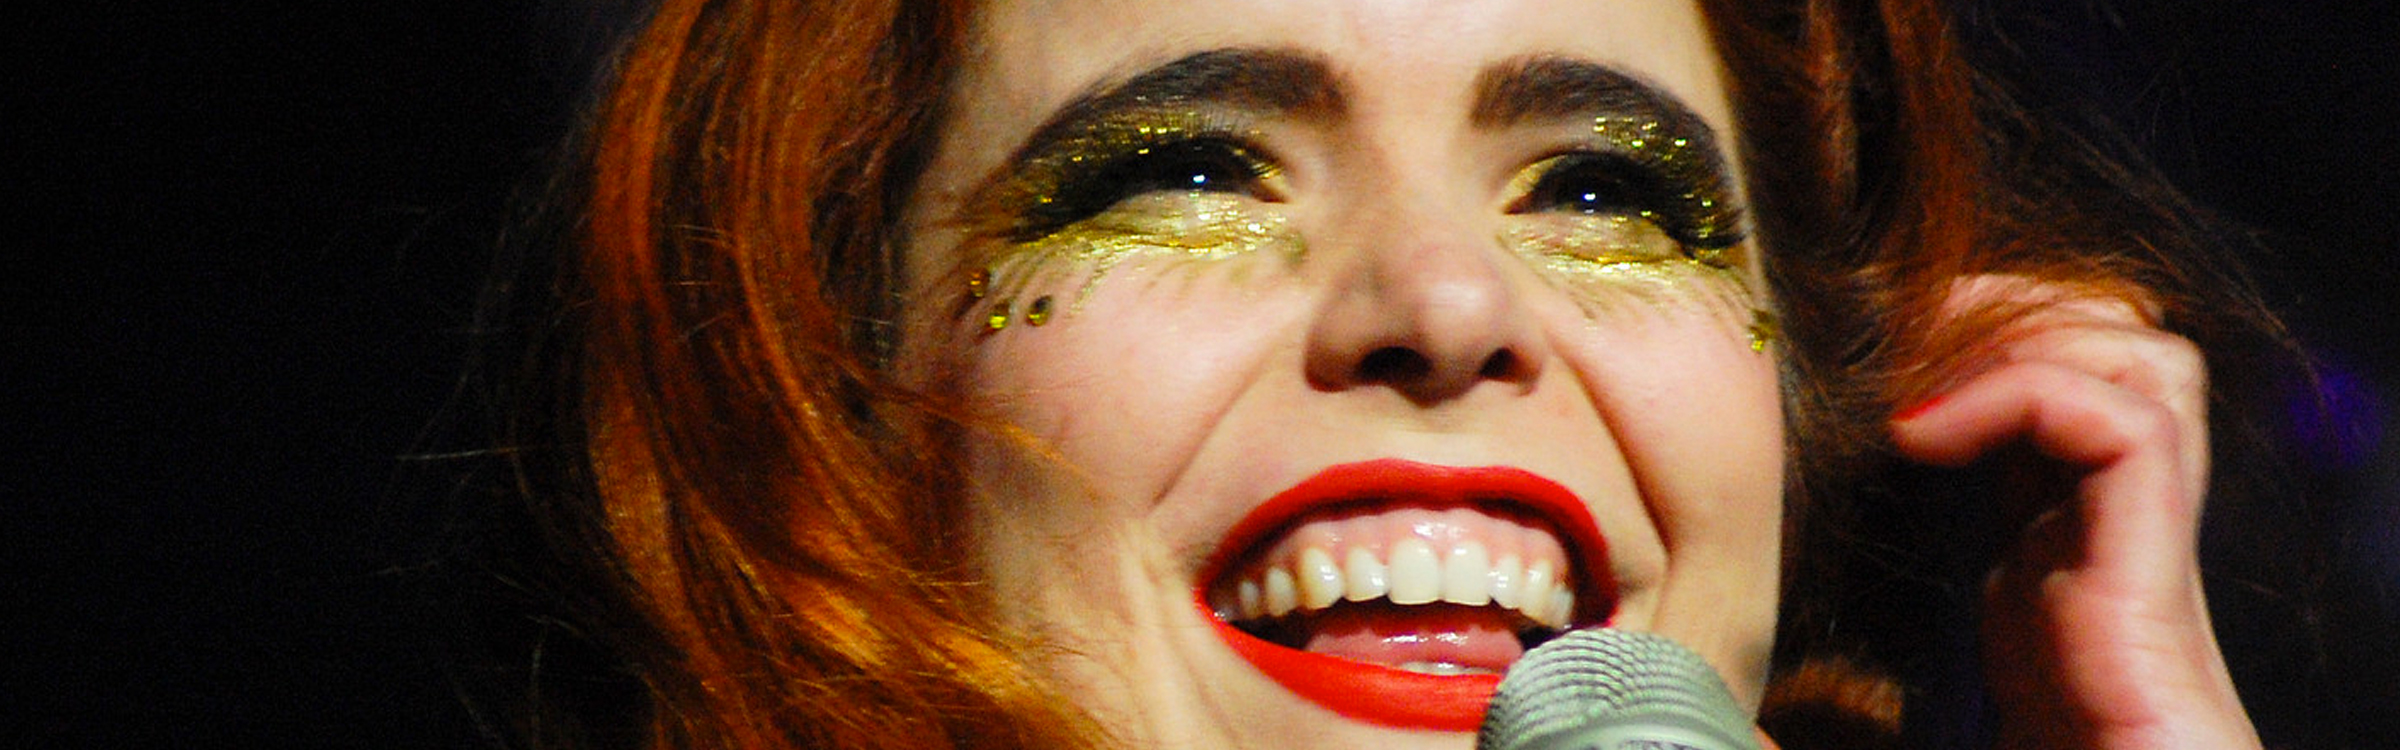 Header paloma faith